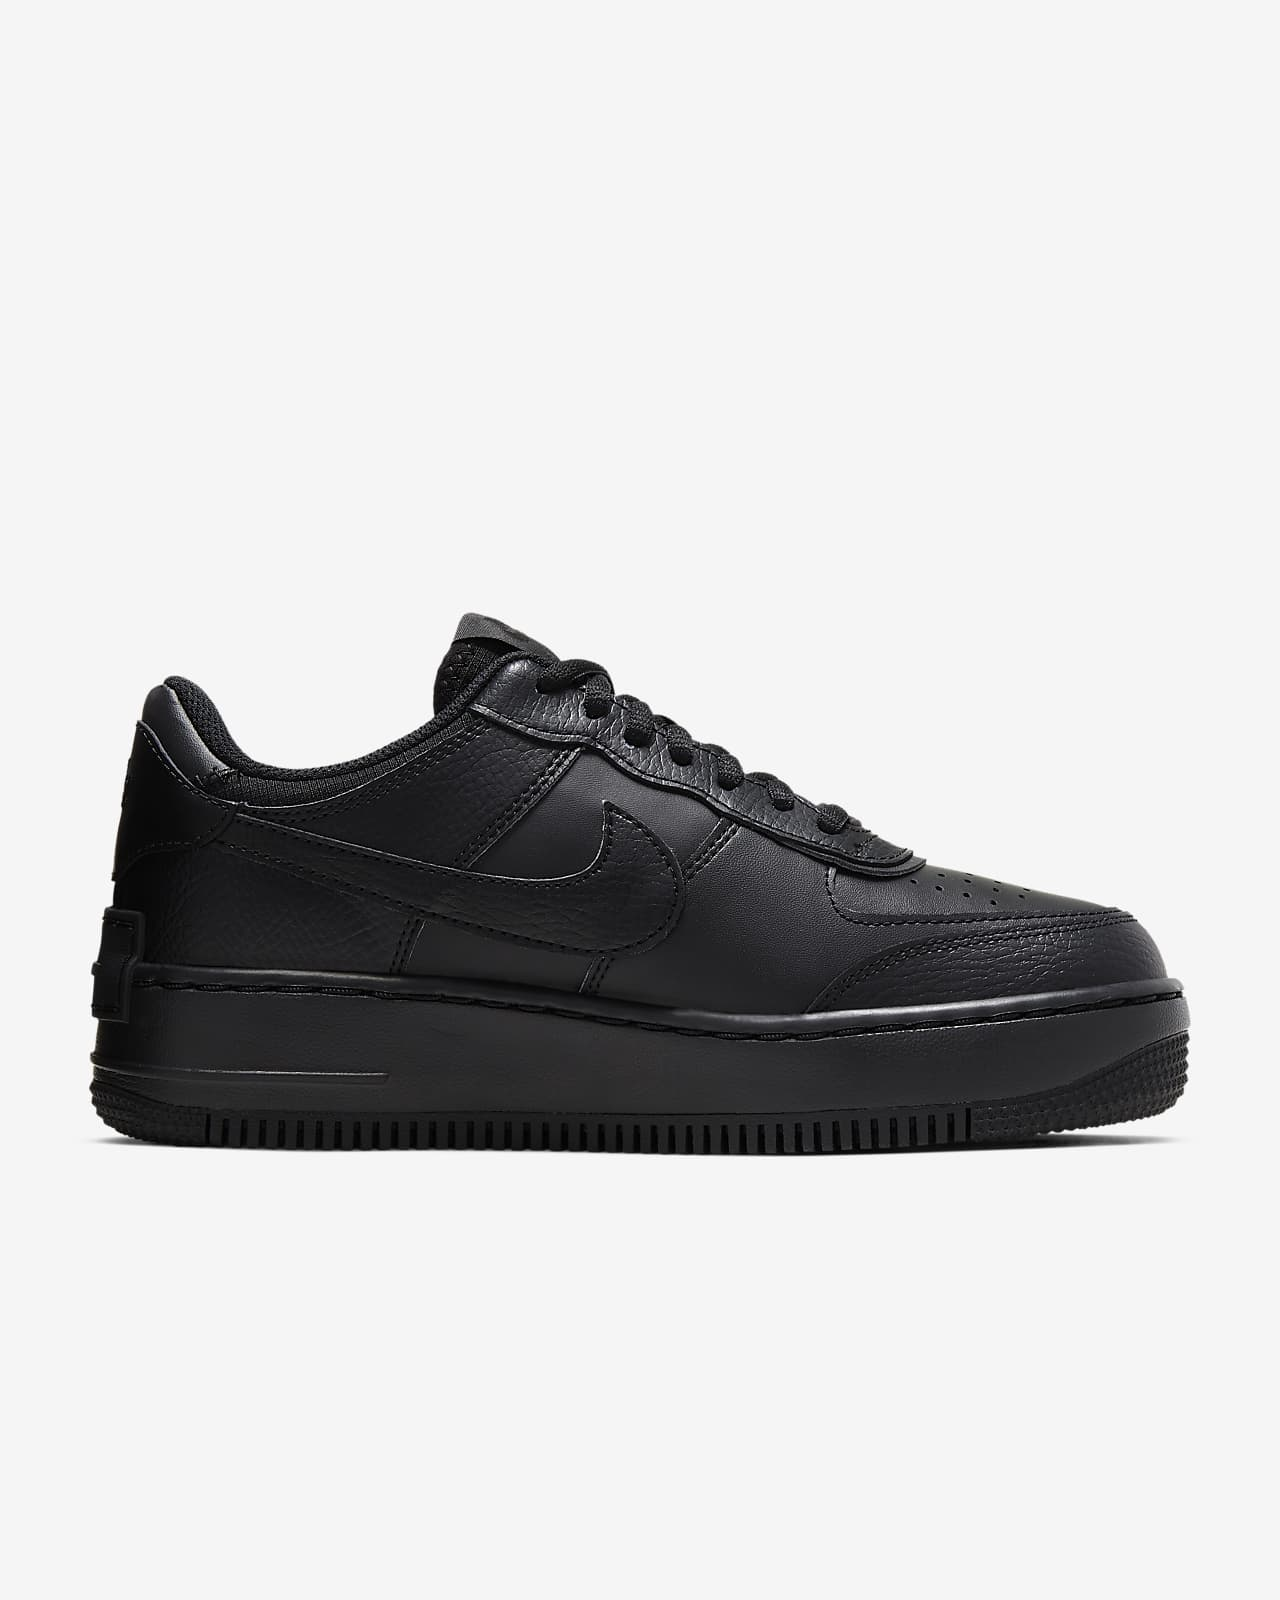 Nike Air Force 1 Shadow Women S Shoe Nike Gb And while tonal pairs have secured bruce kilgore's 1982 design a spot within th. nike air force 1 shadow women s shoe